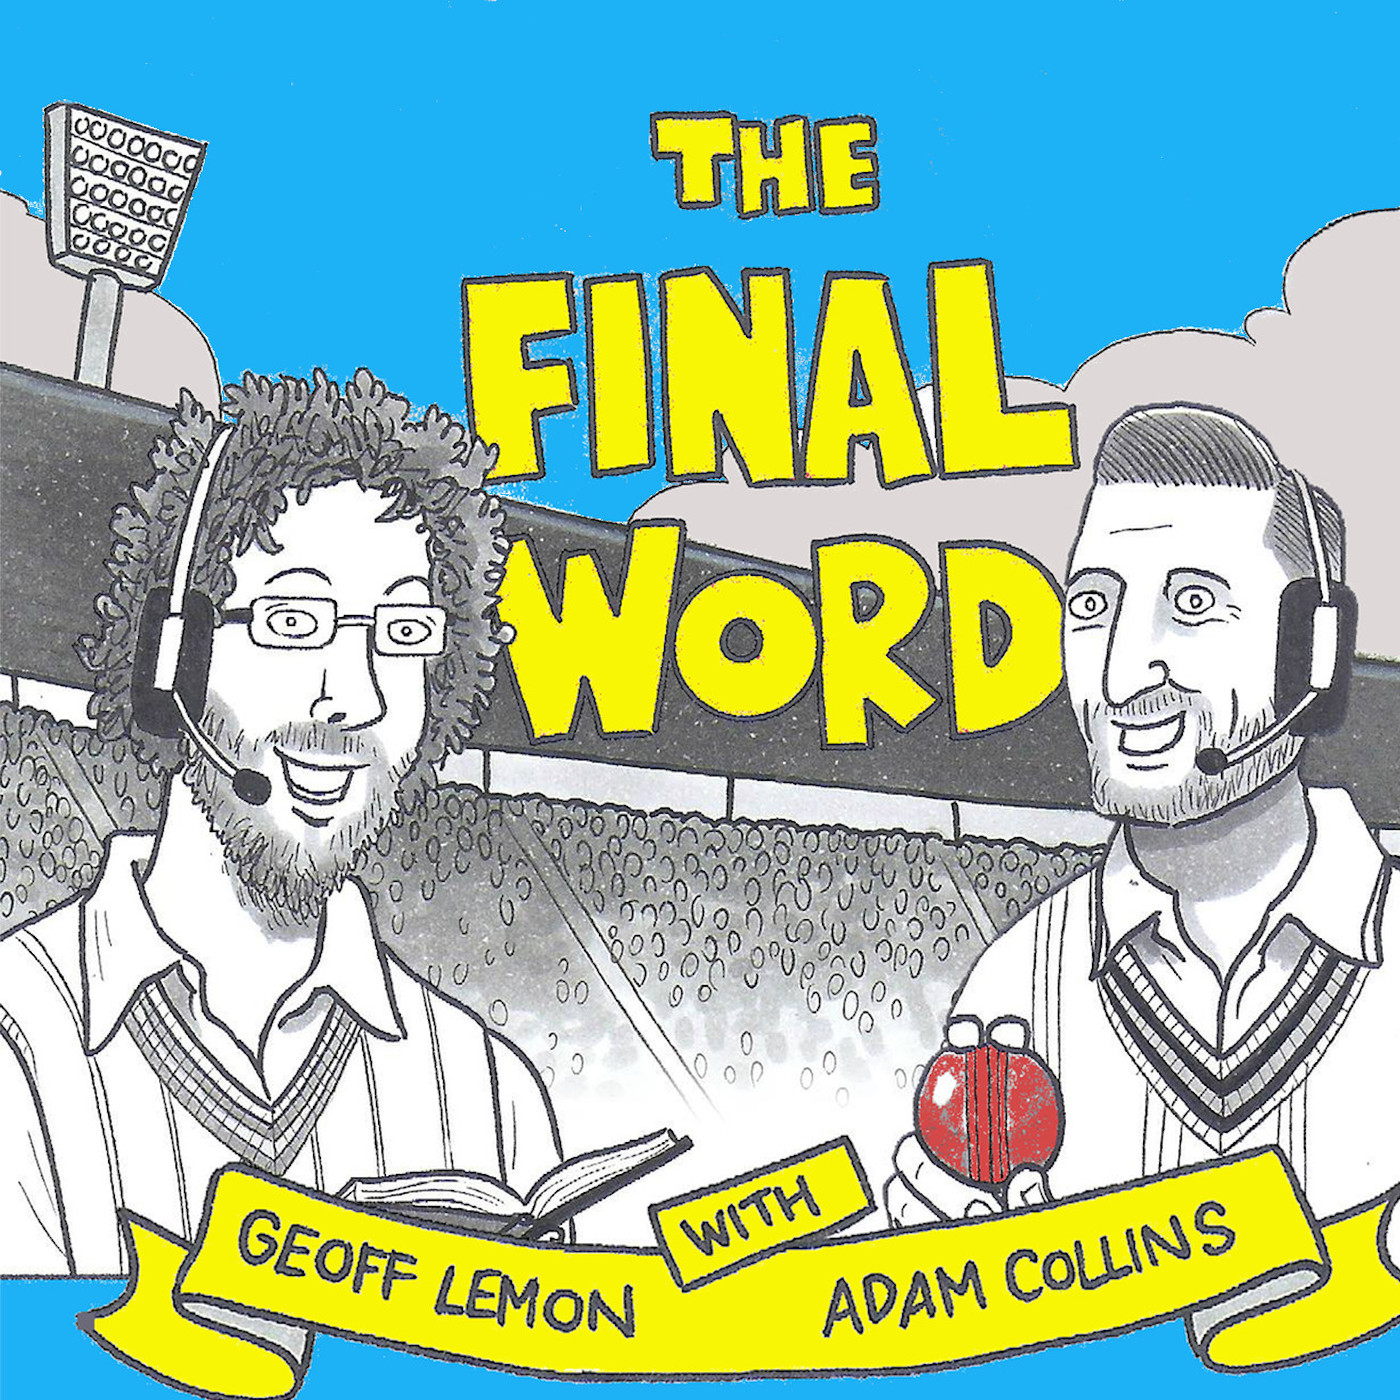 Ashes Daily: The Oval Days 1 to 4